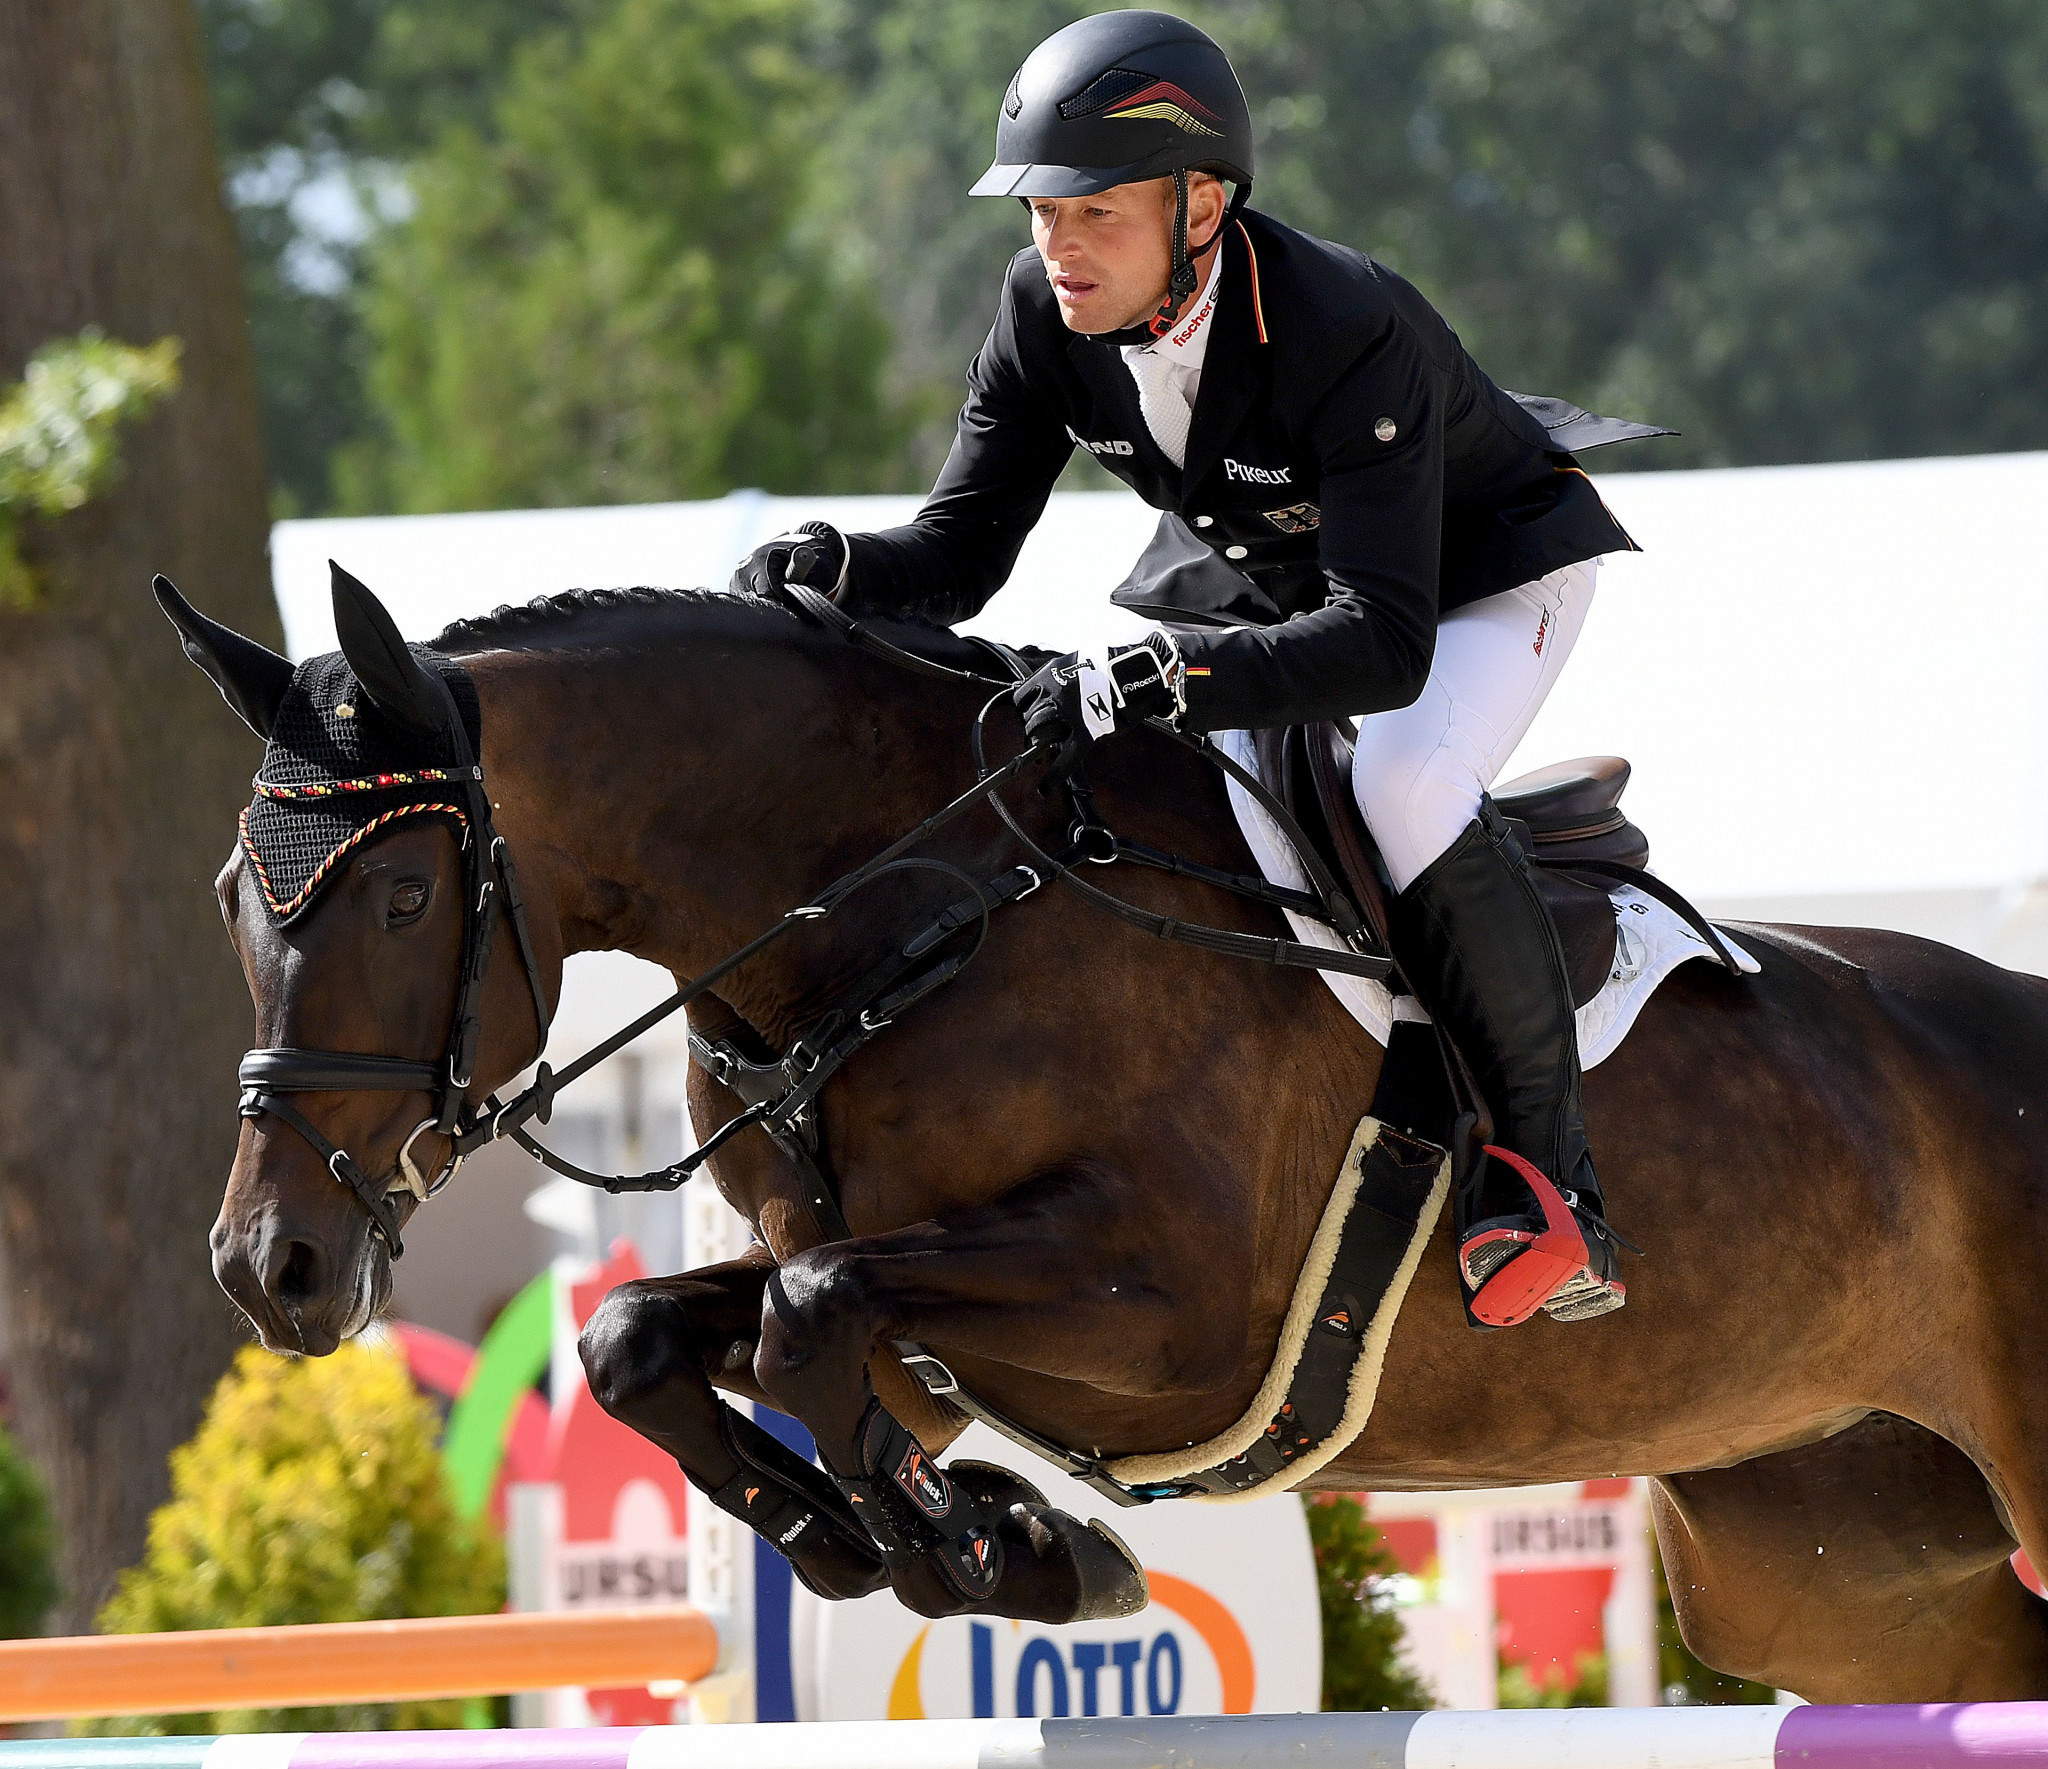 Jung to be crowned as FEI Classics winner at Burghley Horse Trials